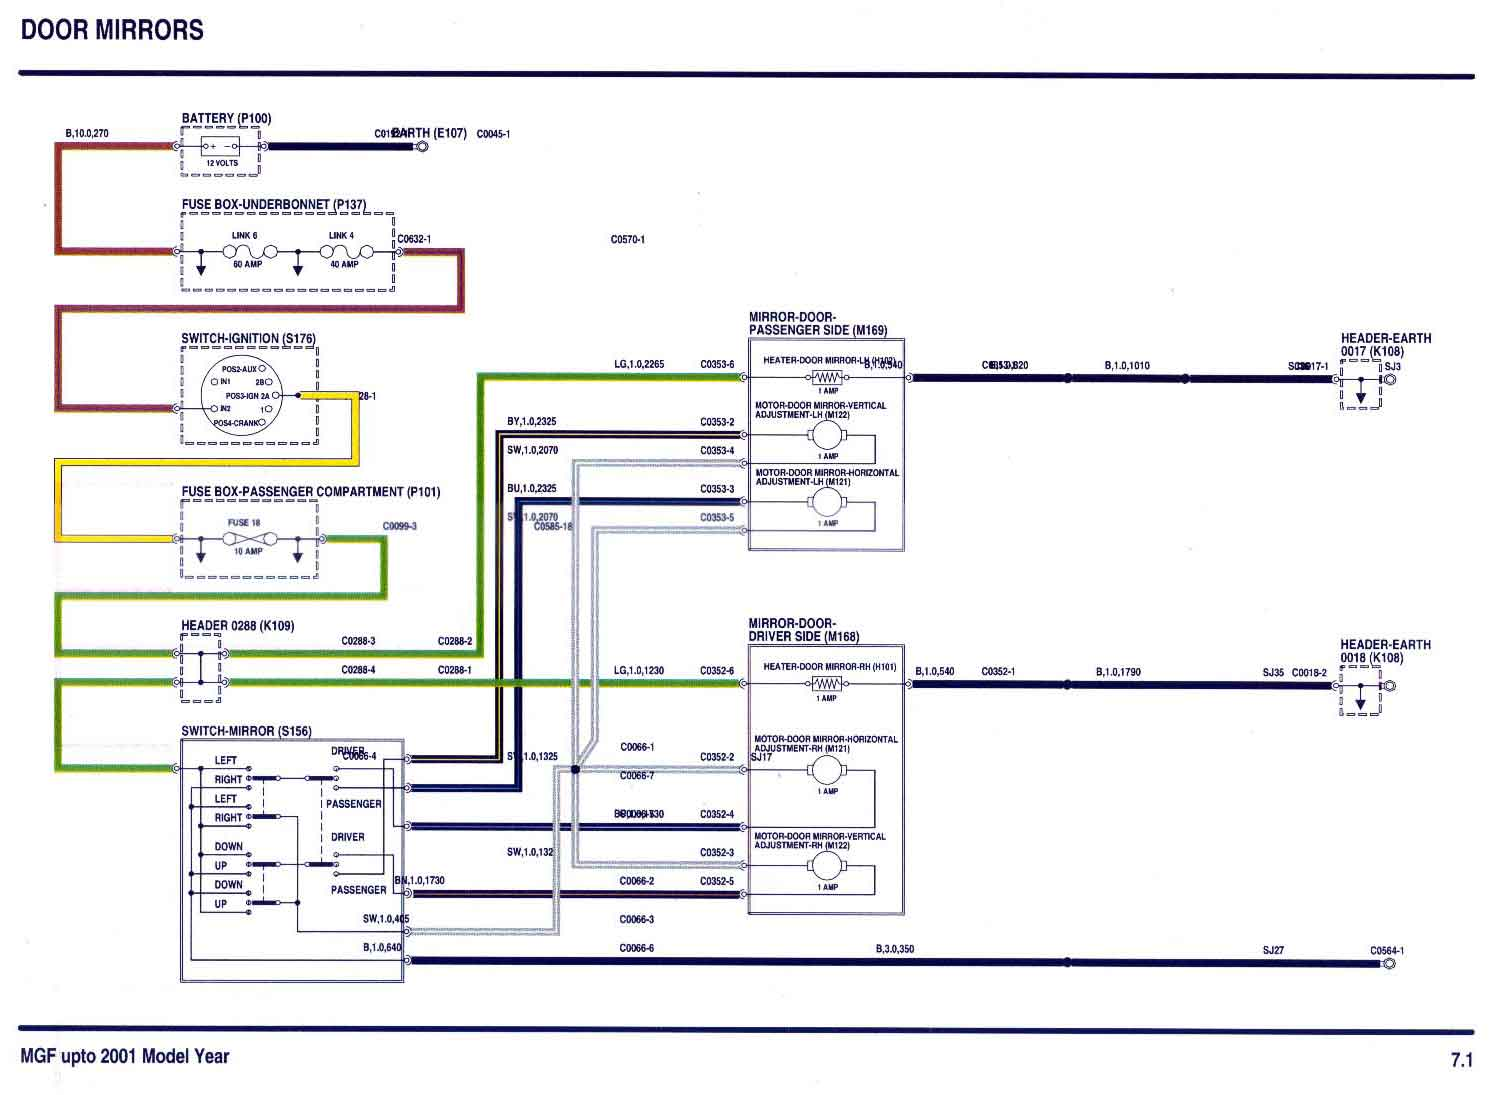 Mirrors electrical circuits rover 45 wiring diagram at gsmportal.co